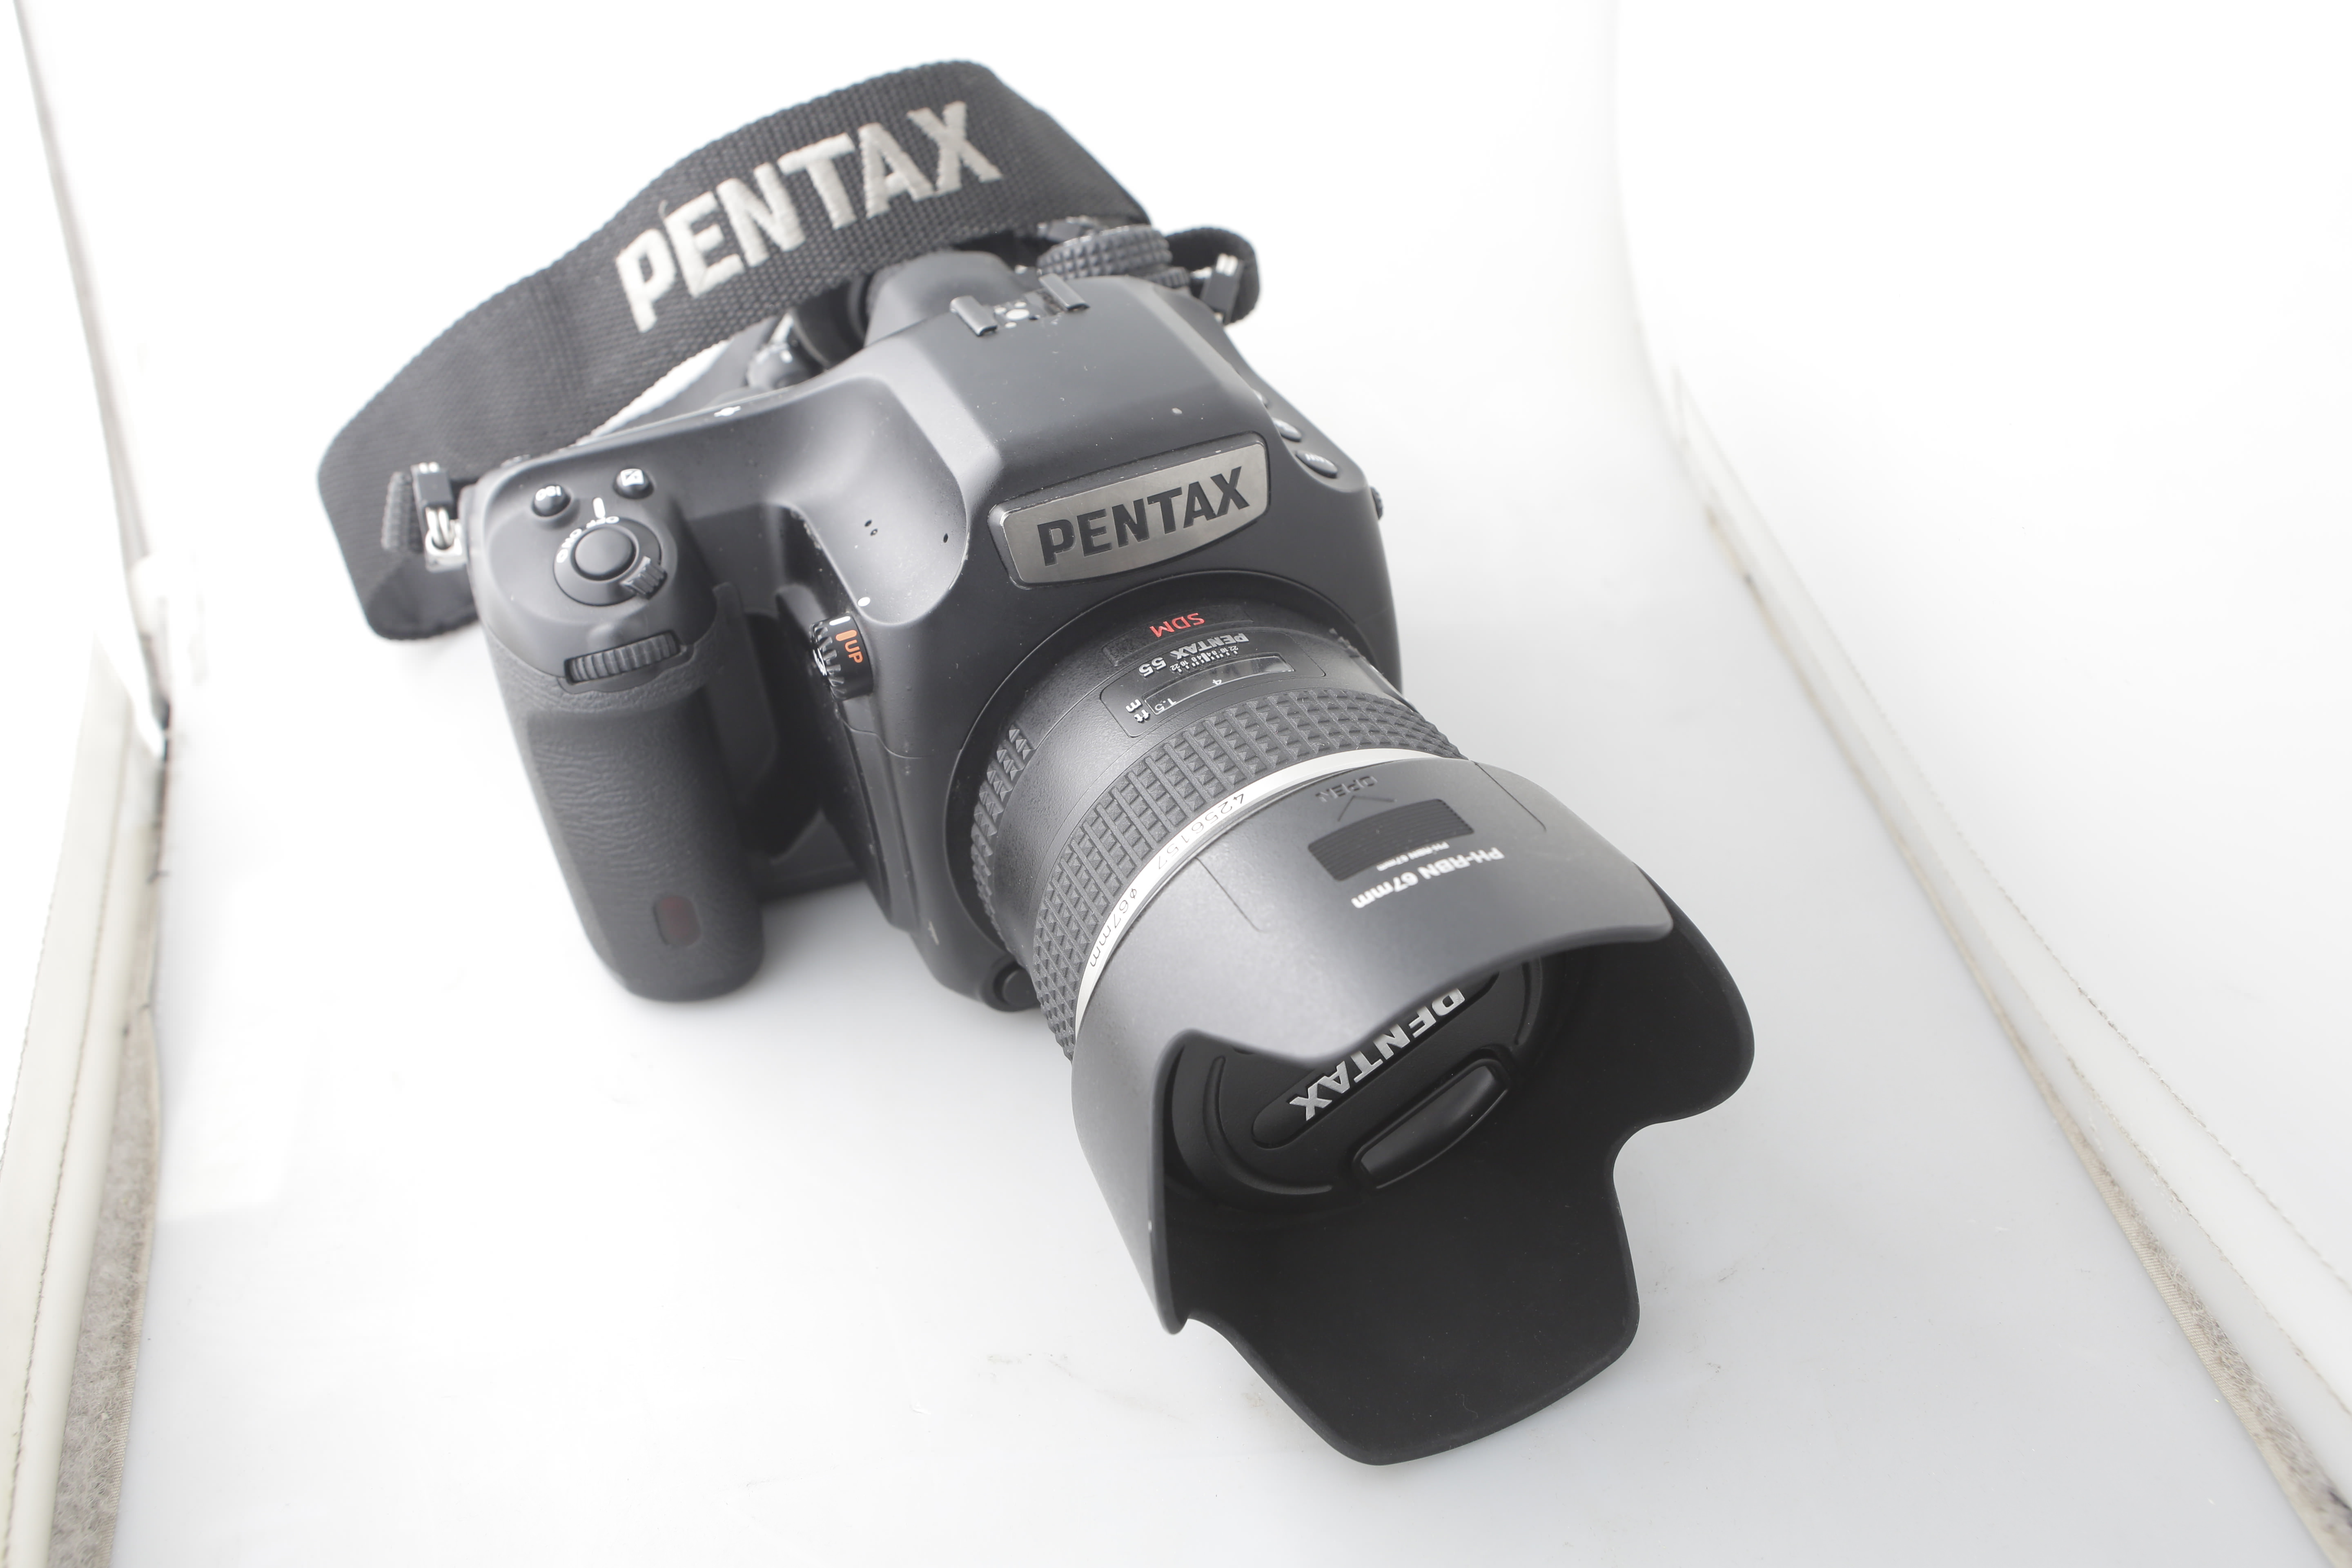 Profoto D1500 Air with Pentax 645 Z Package